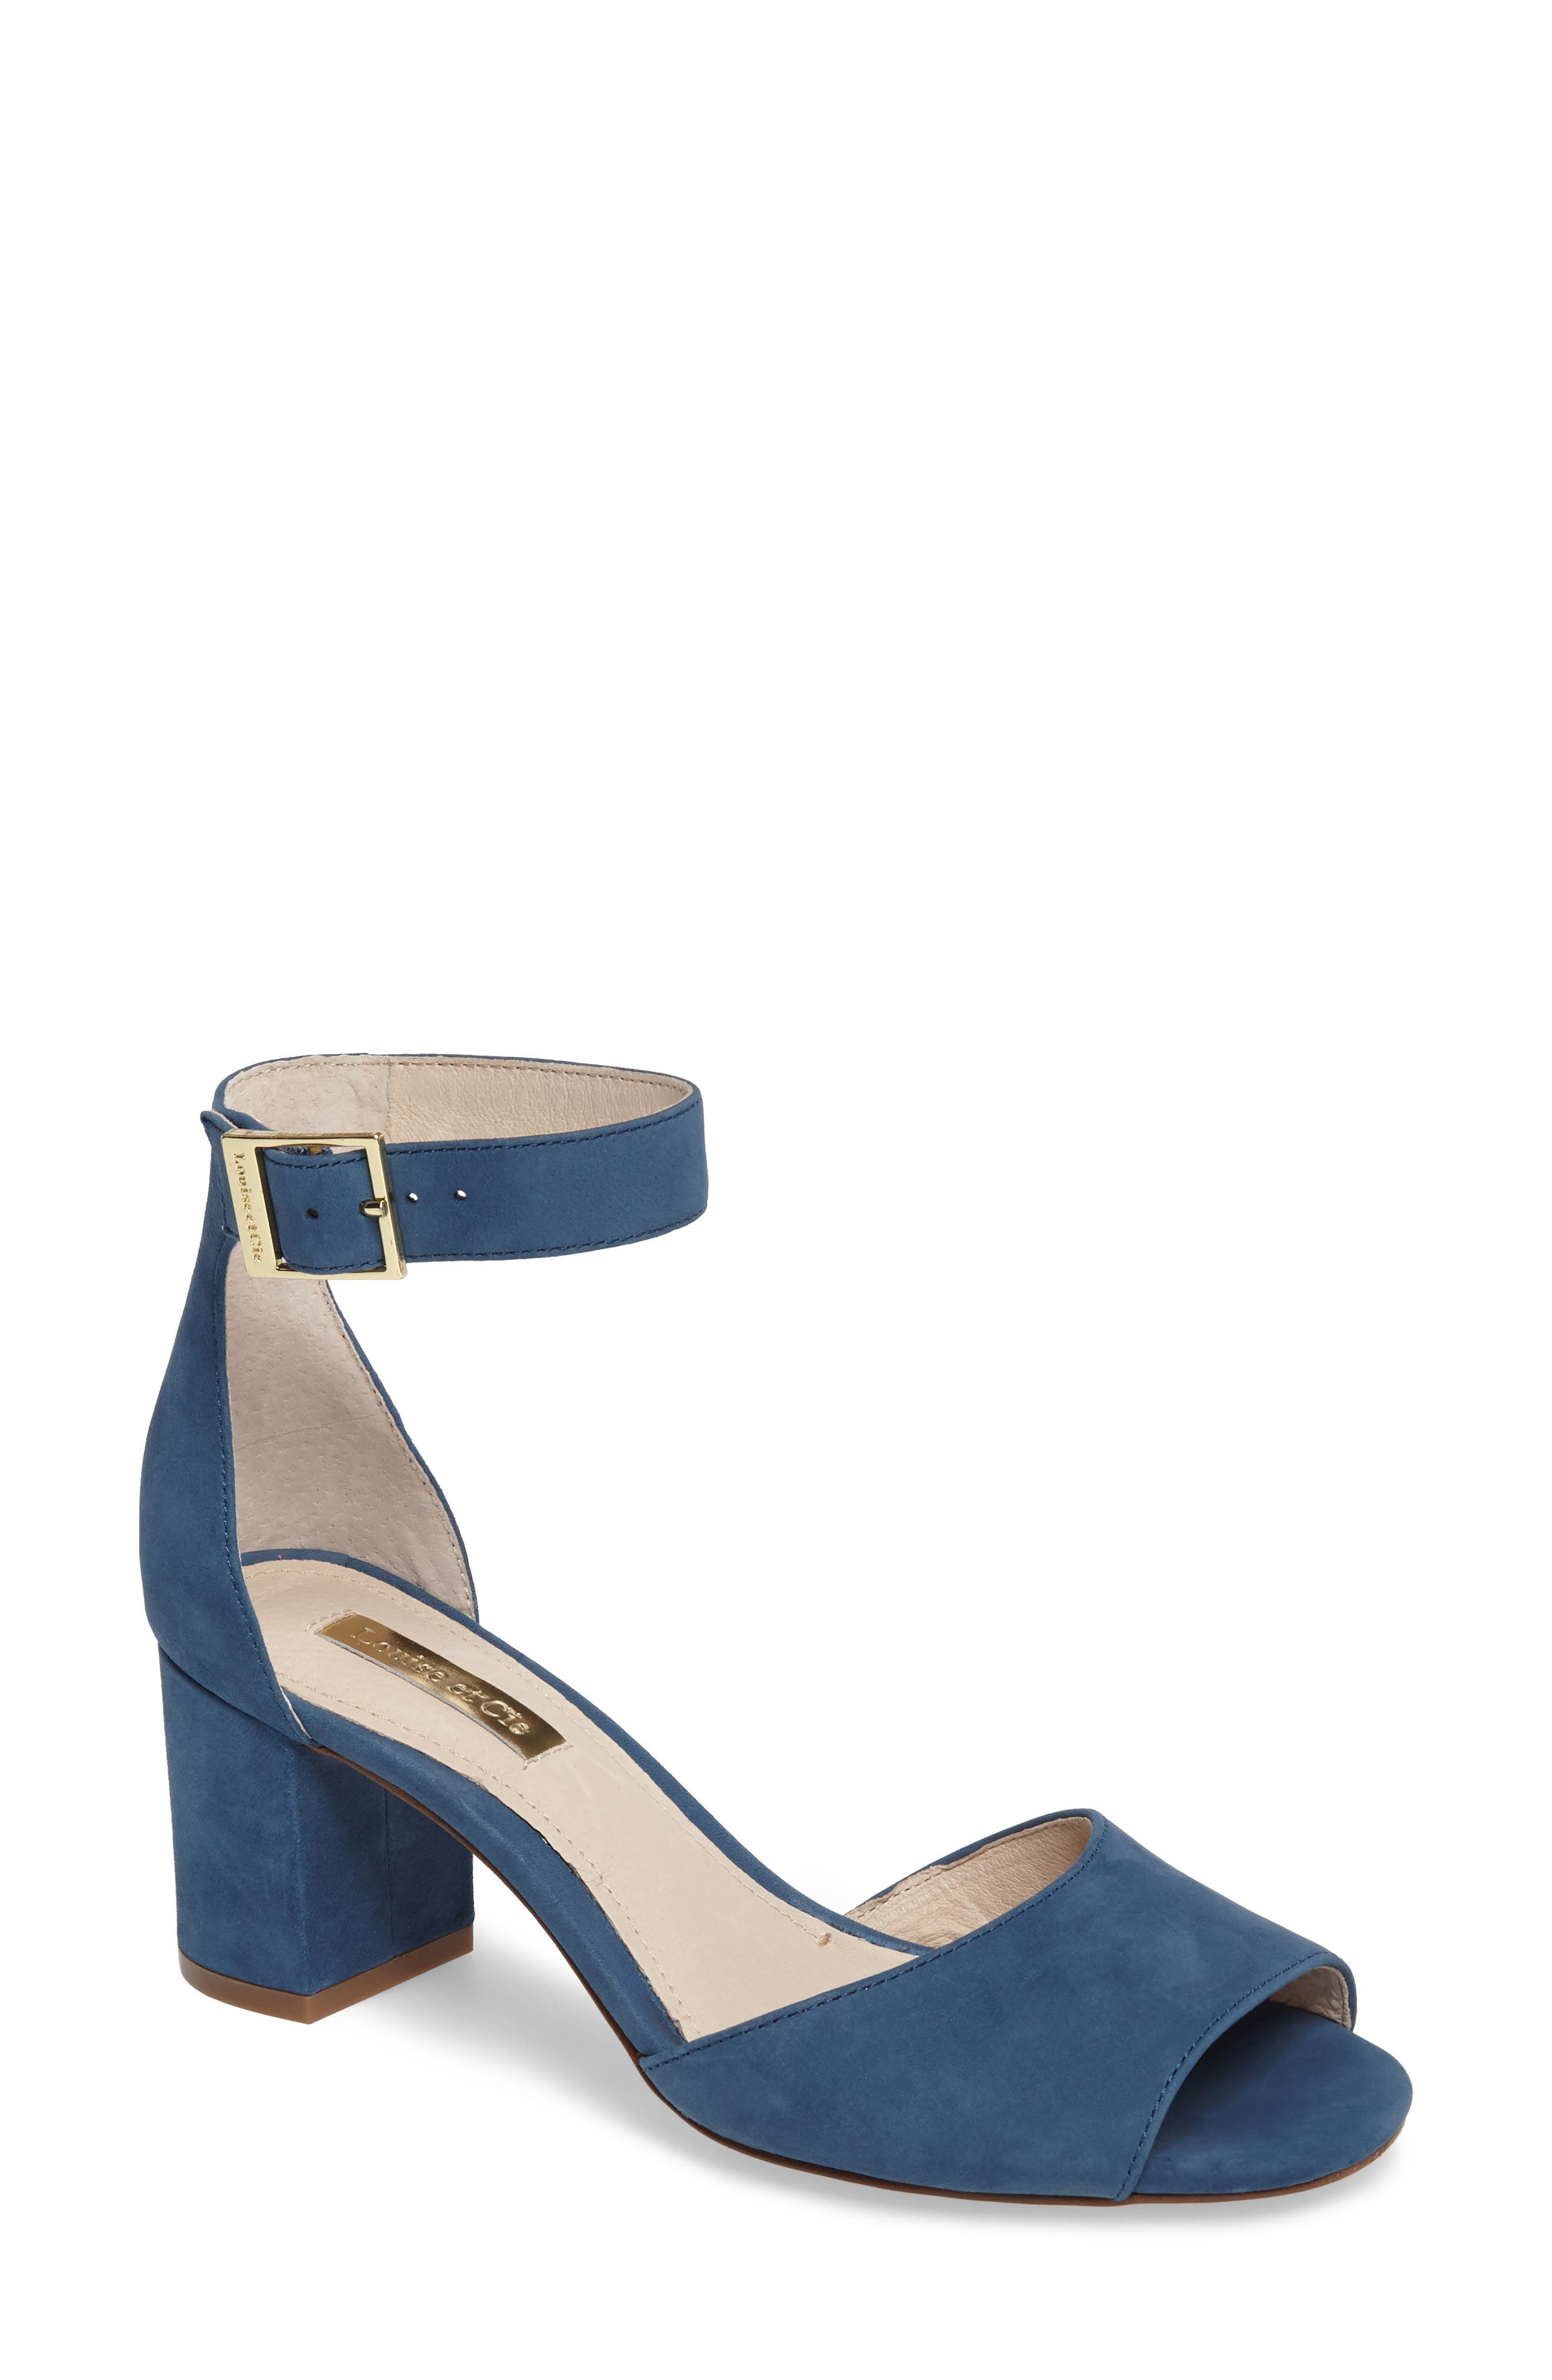 Louise et Cie Kainey Leather and Suede Block Heel Sandal o0wcB